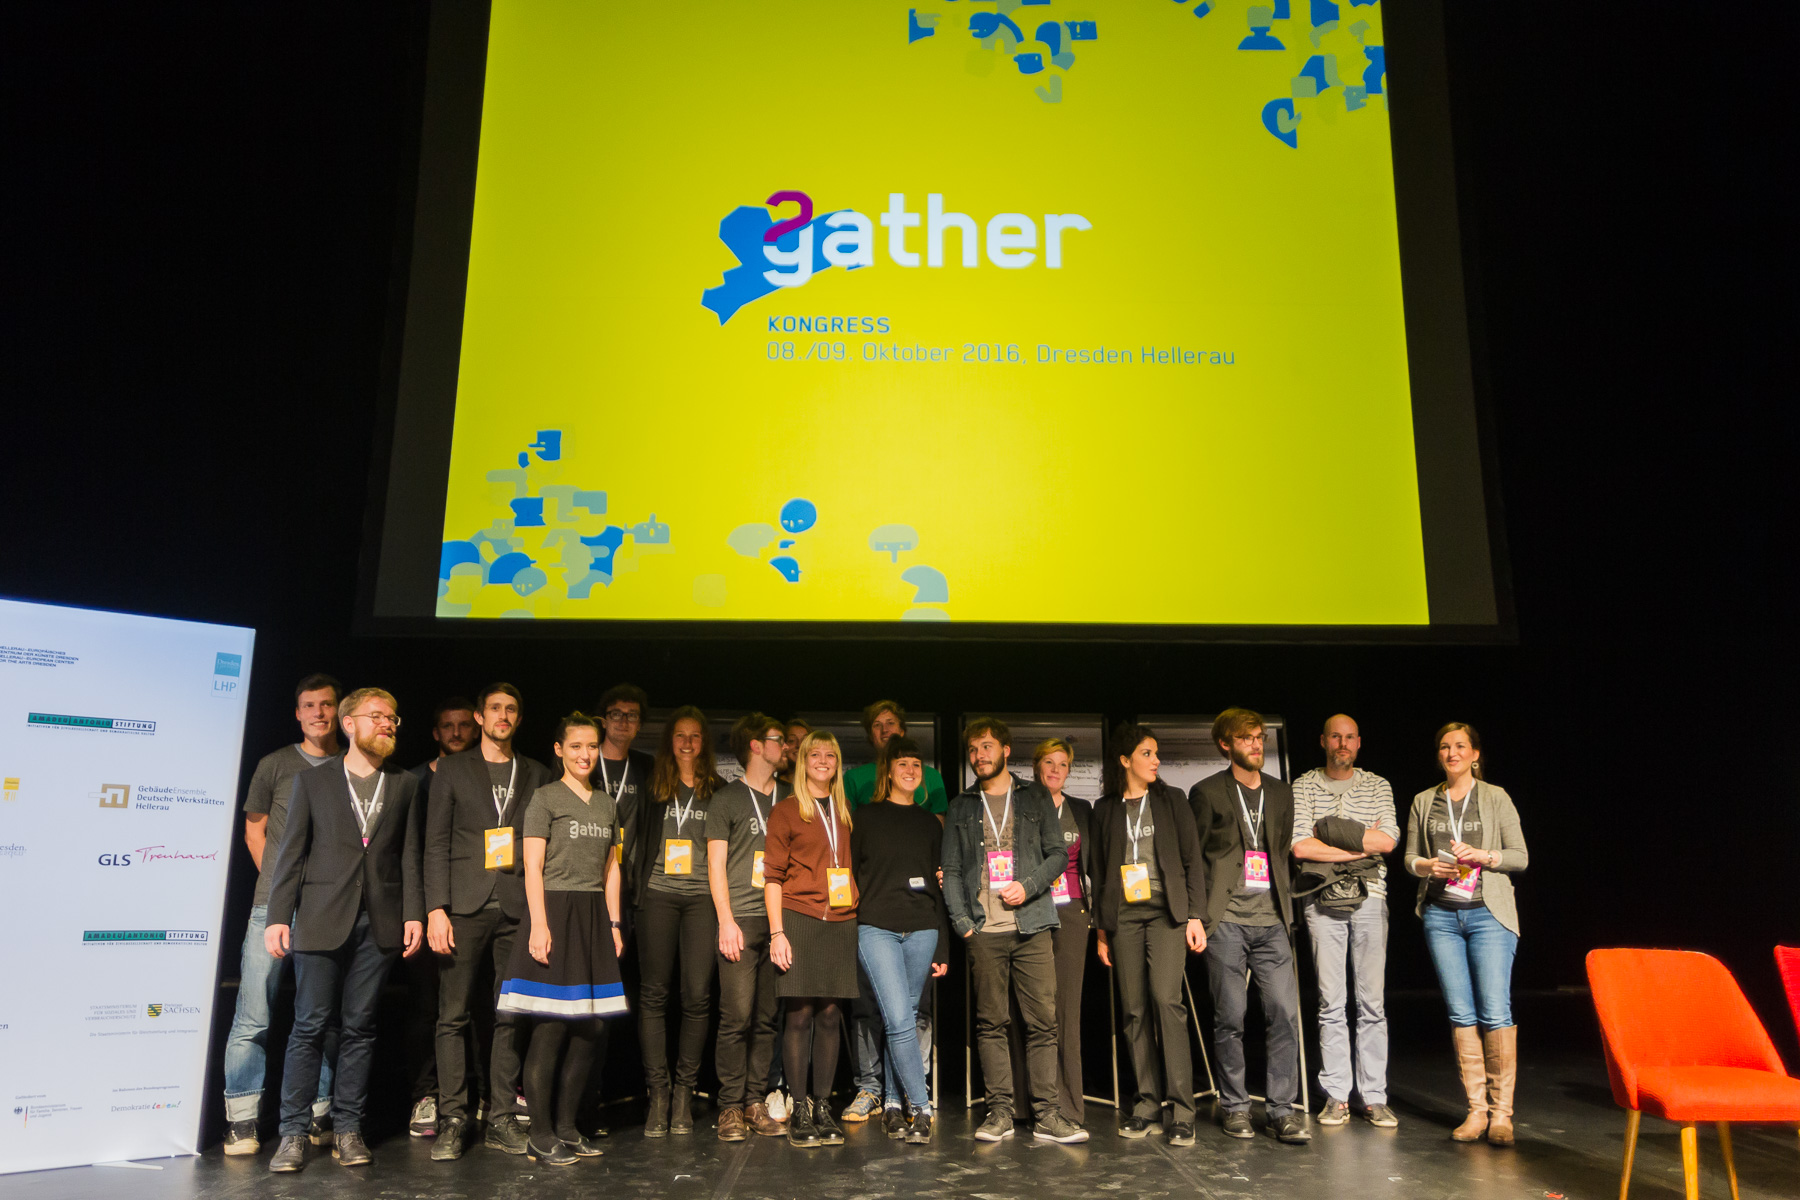 Der 2gather Kongress in Hellerau 2016